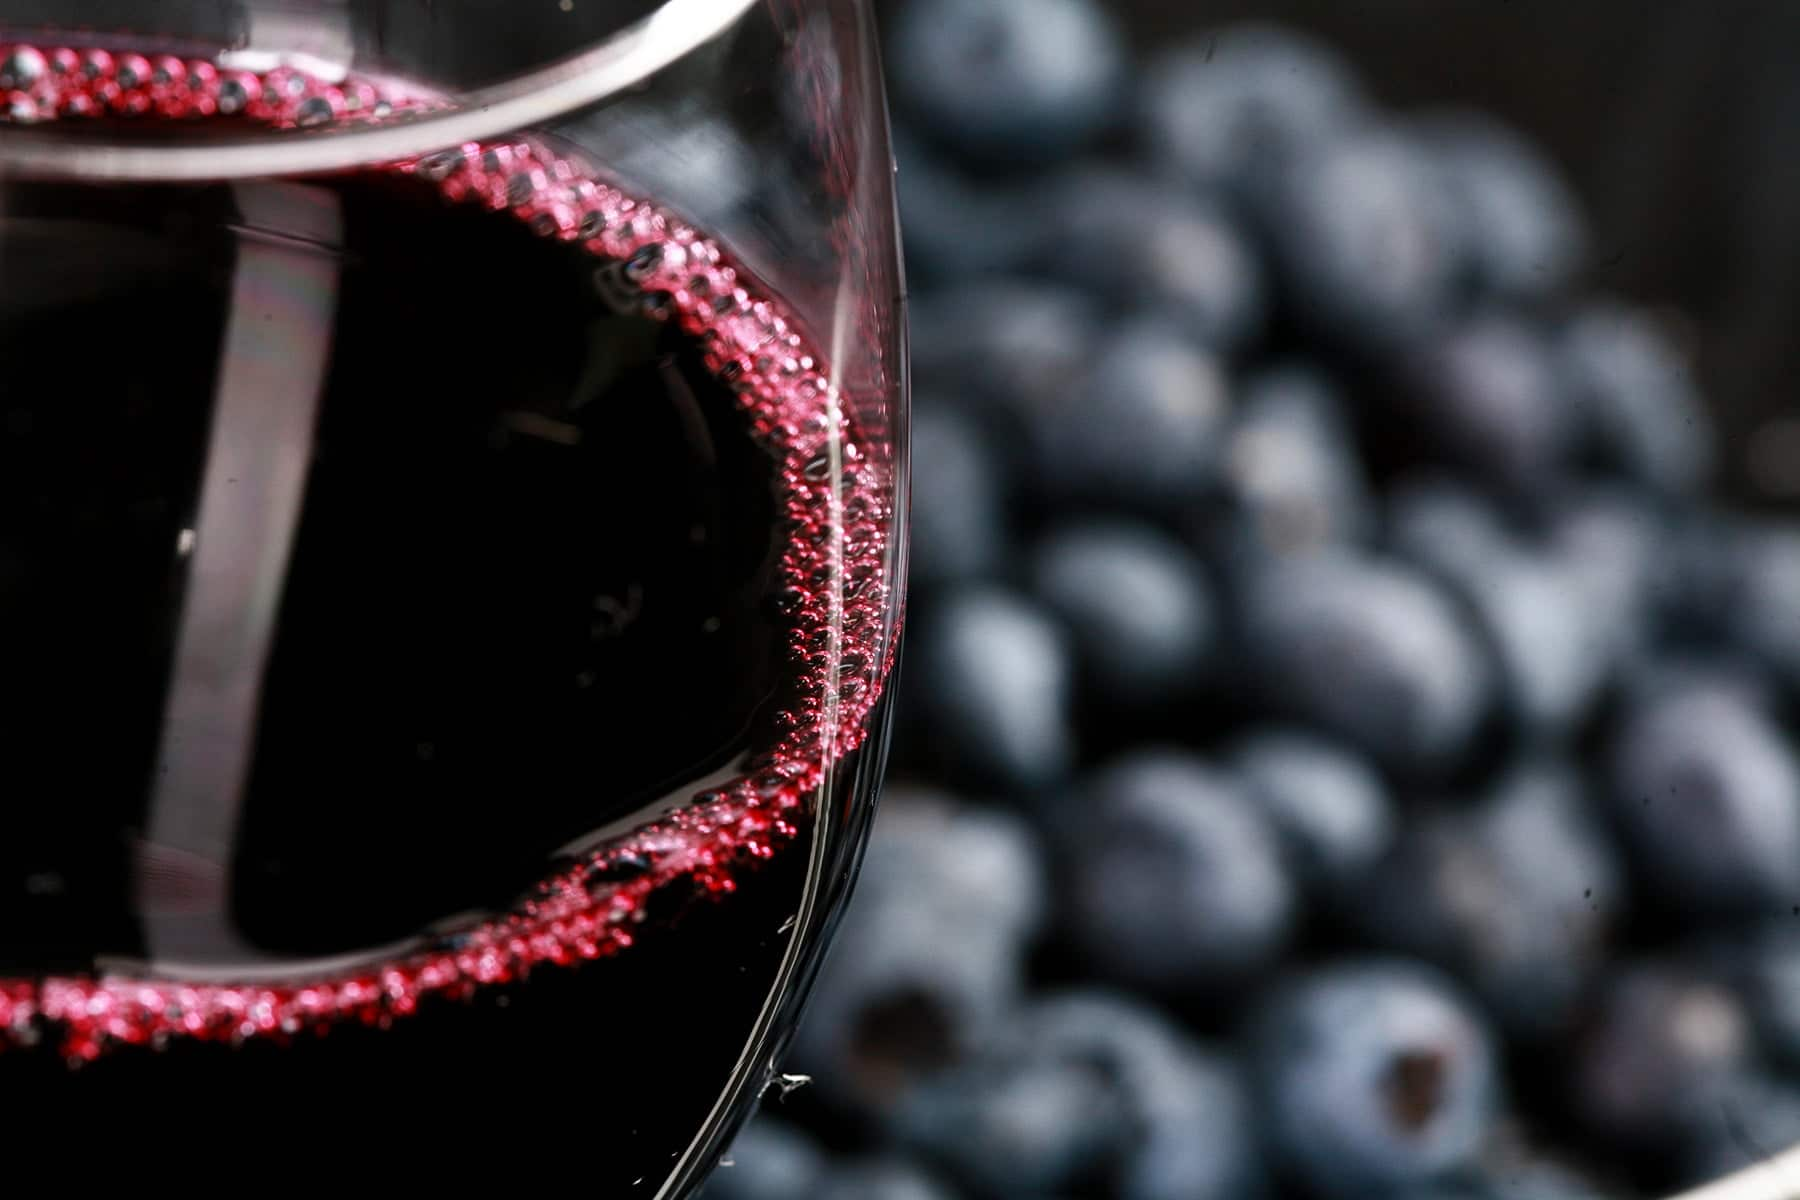 A glass of blueberry wine in front of a pint of fresh blueberries.